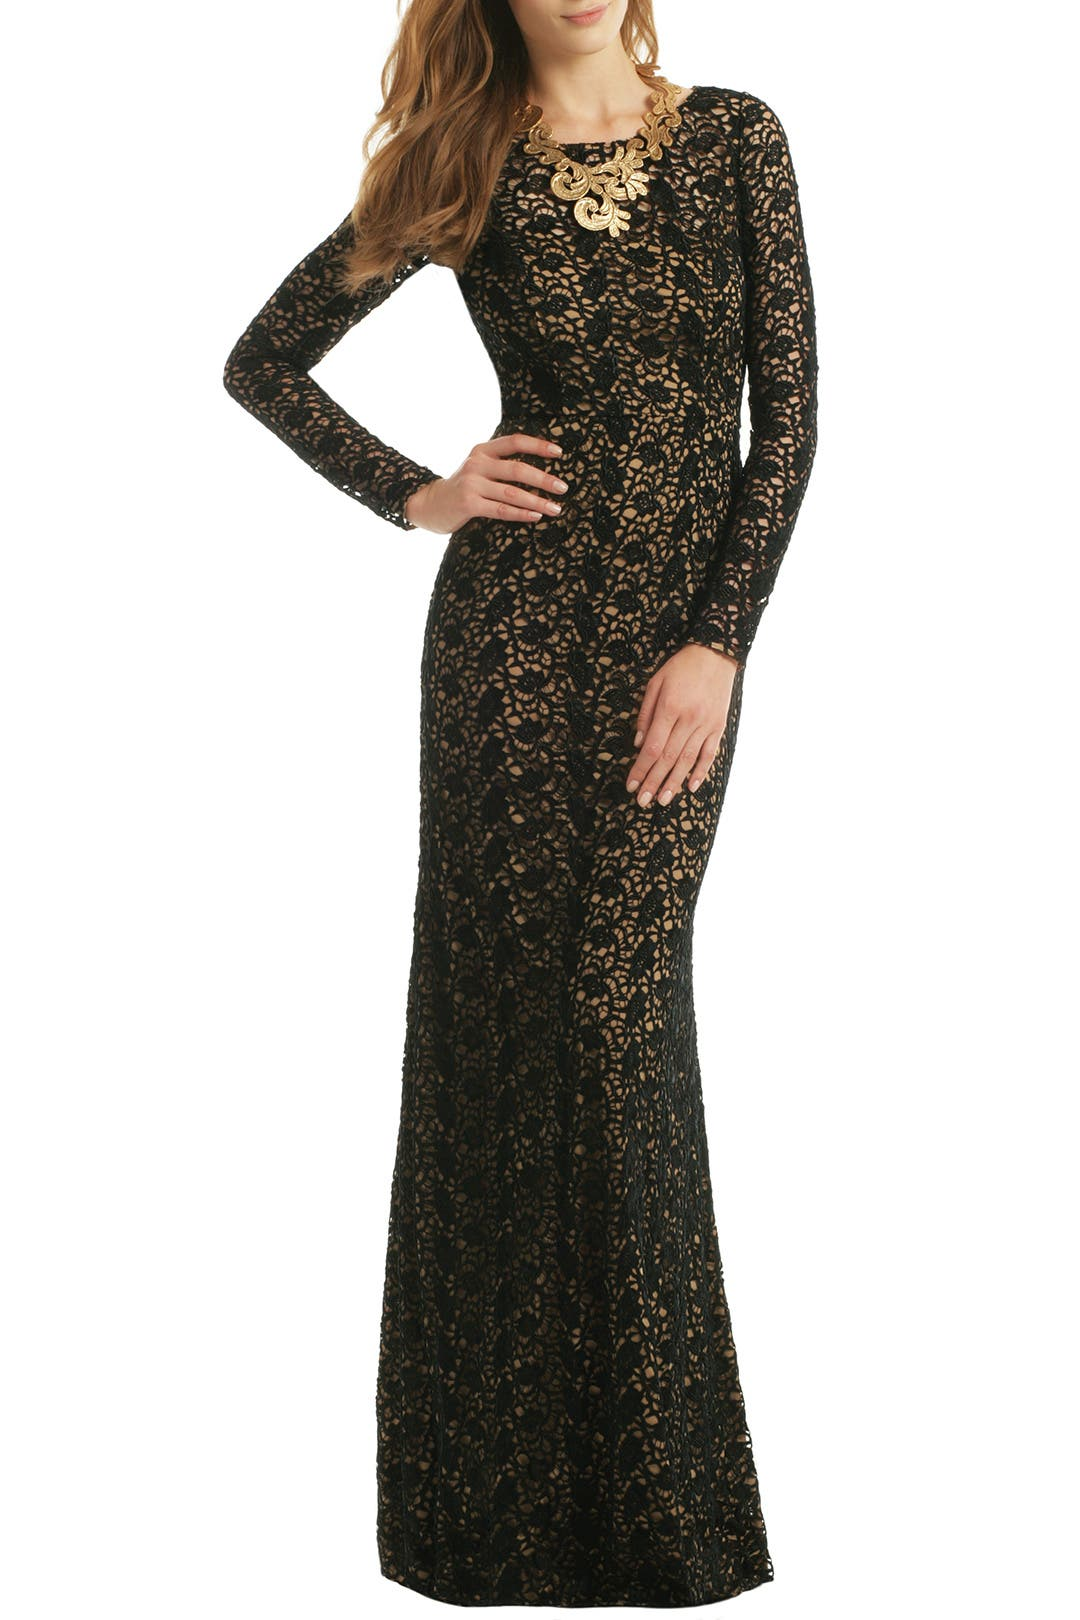 Courtess Gown By Carmen Marc Valvo For 55 80 Rent